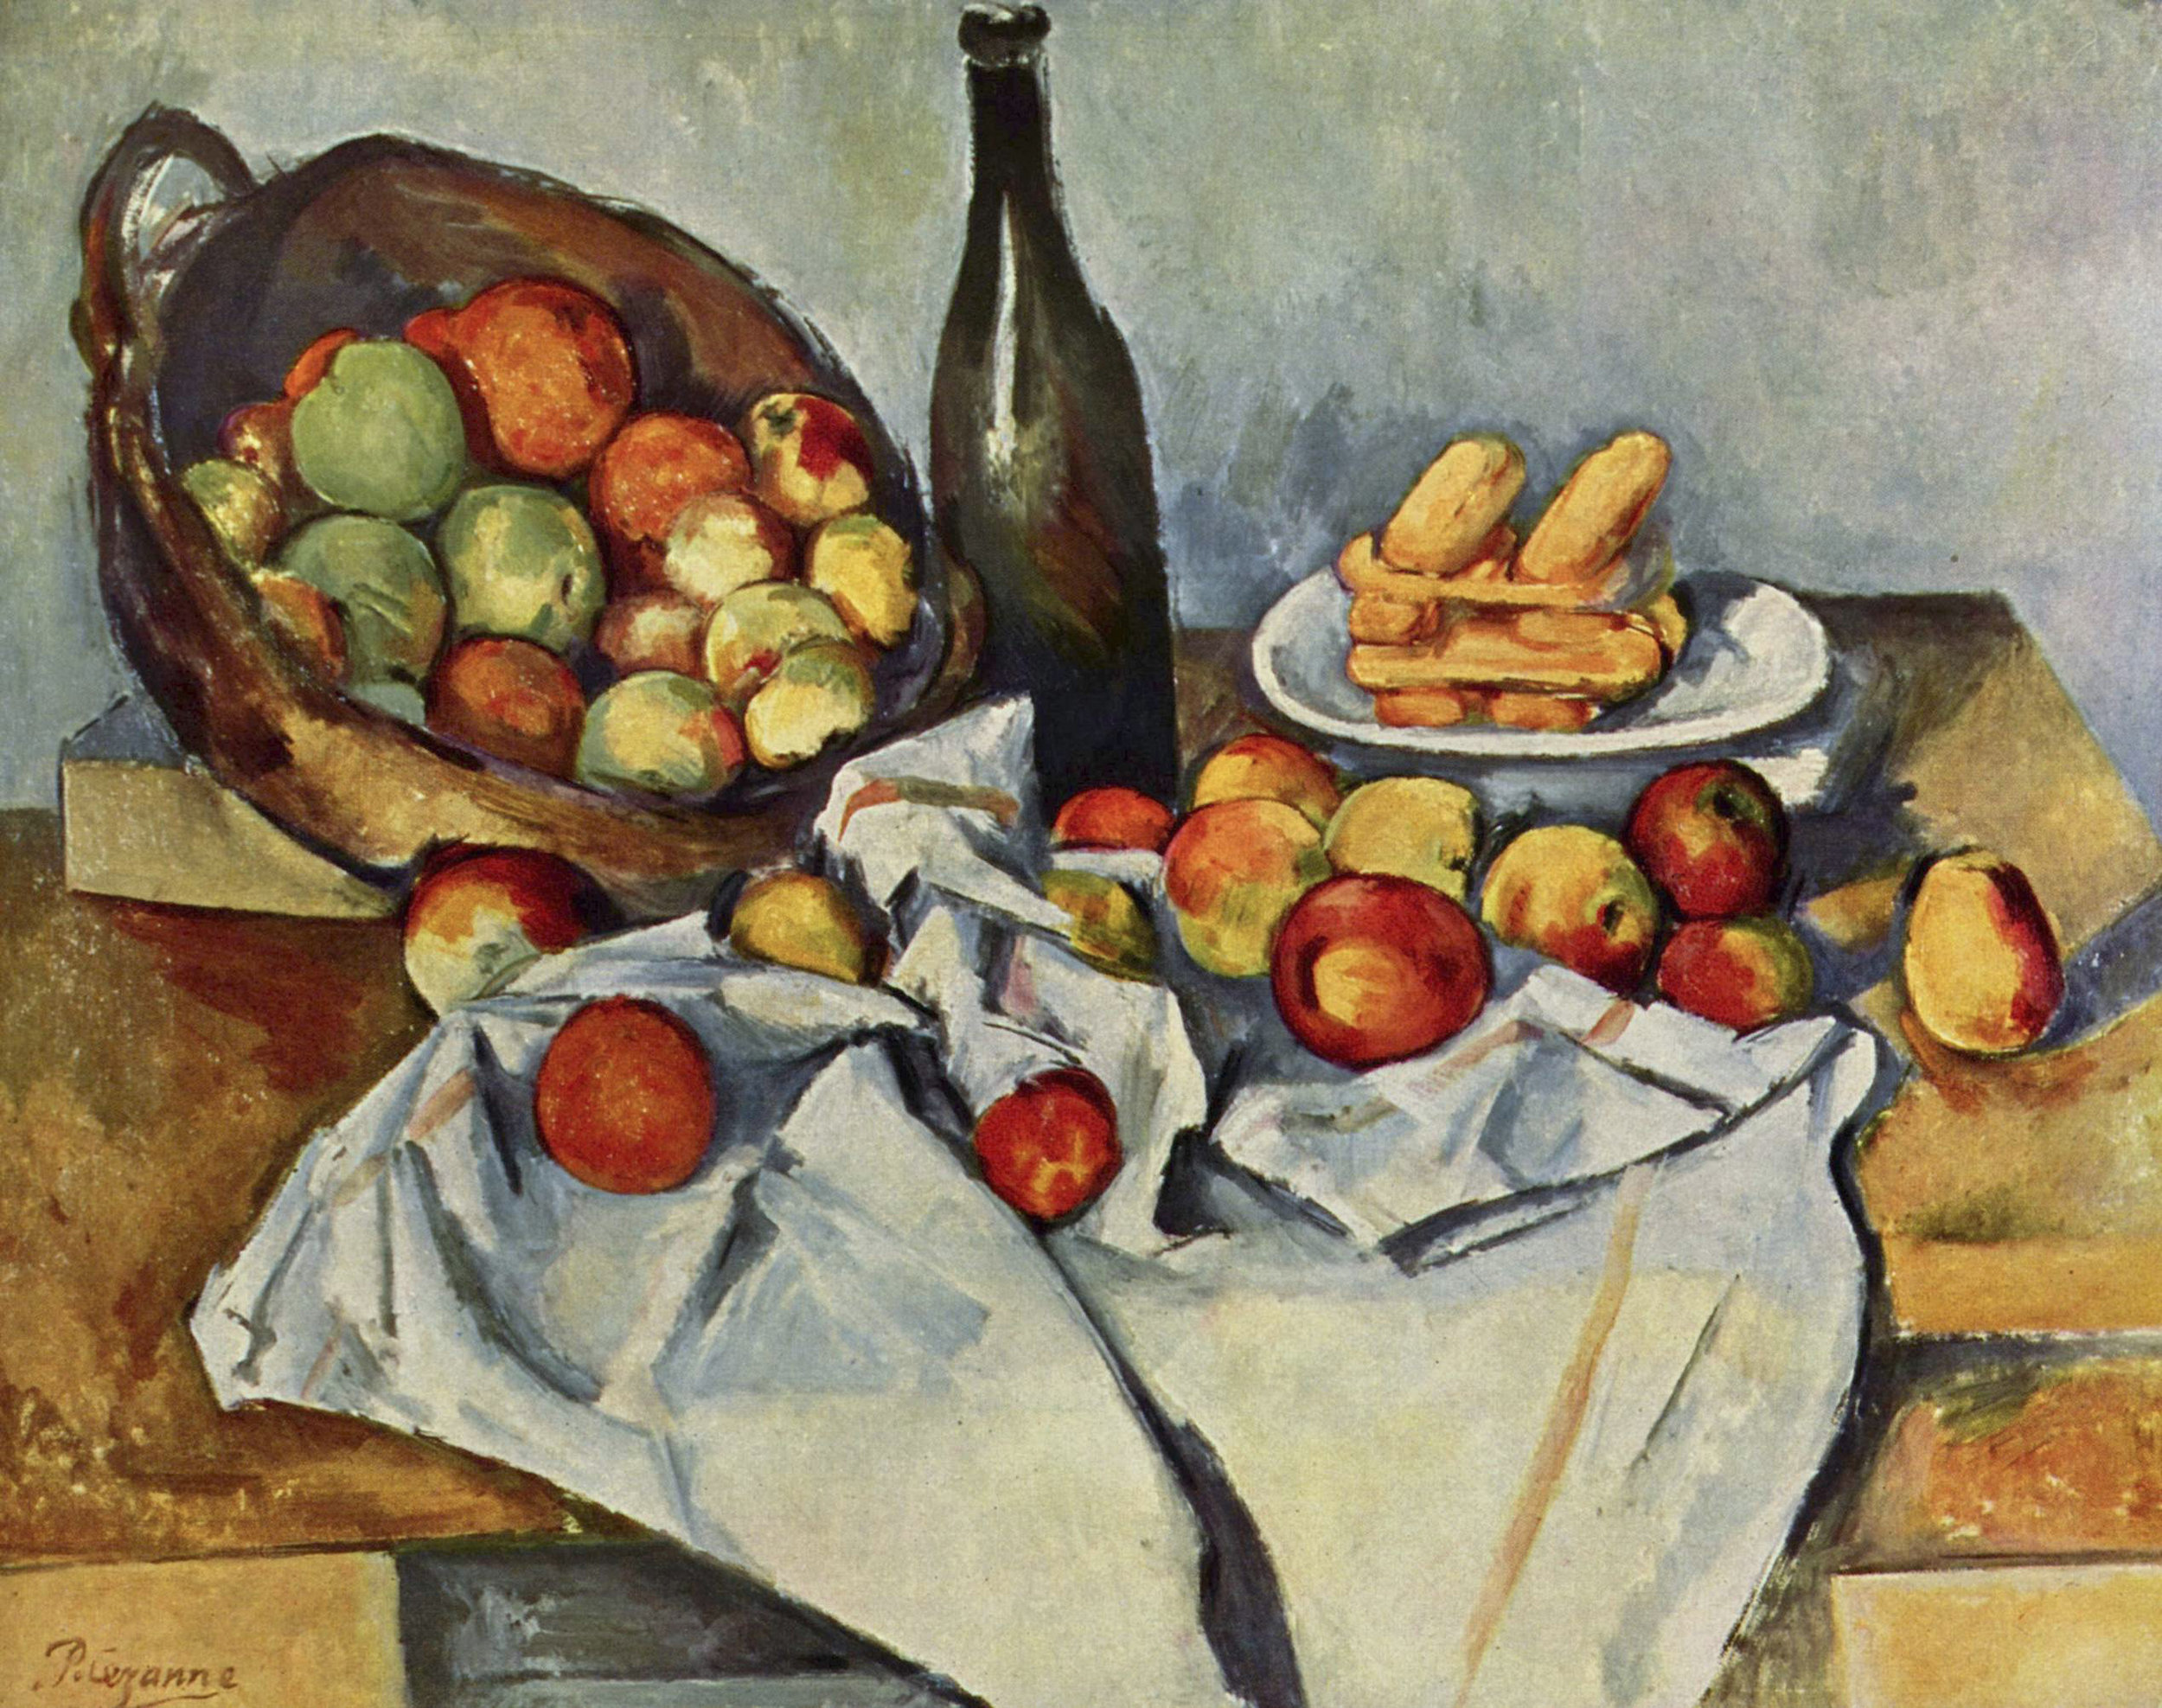 Basket of Apples , Paul Cézanne, oil on canvas, 1895